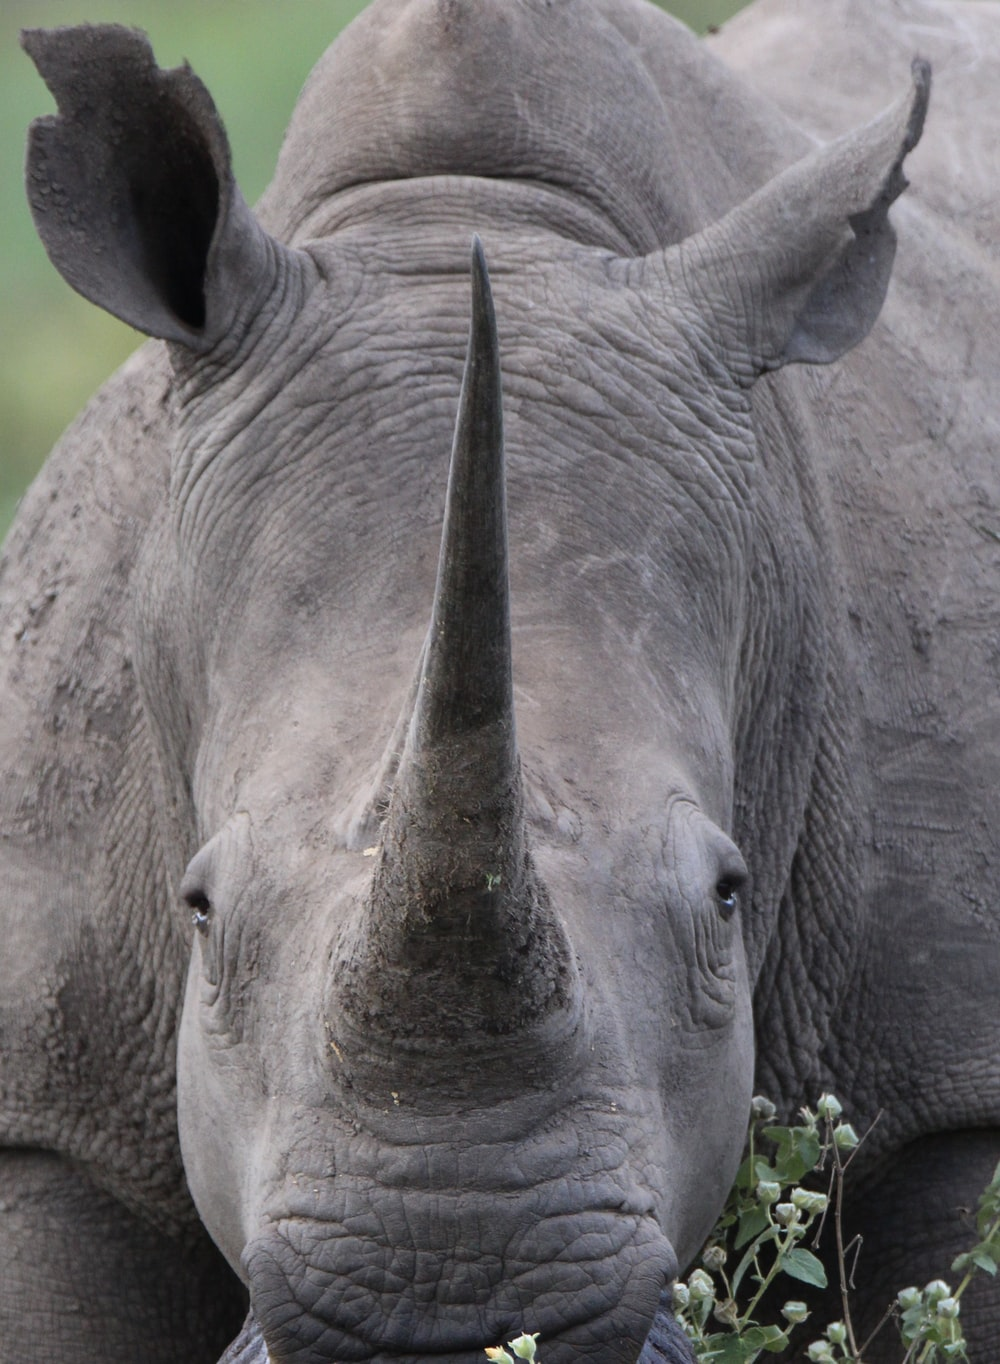 close up photography of gray rhino at daytime